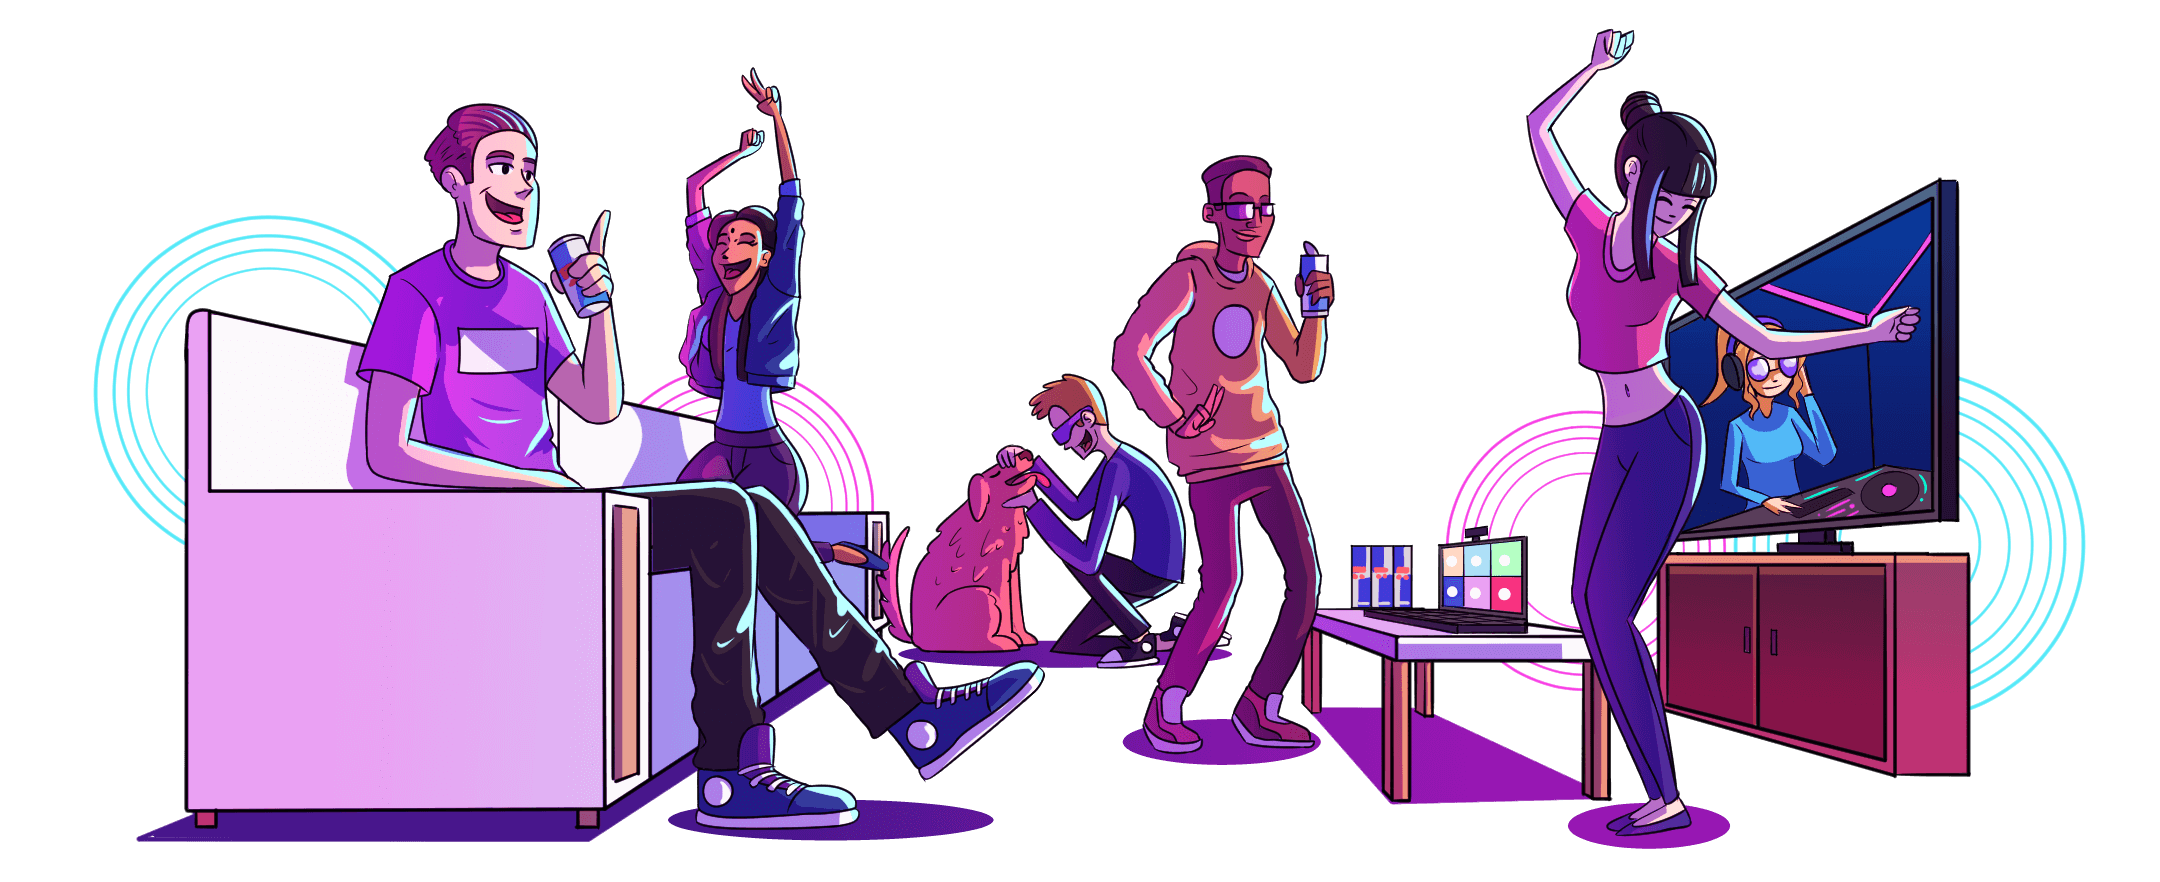 An illustration displaying a diverse group of 5 friends and a dog having fun watching Cyber Rave livestream together at a viewing party.